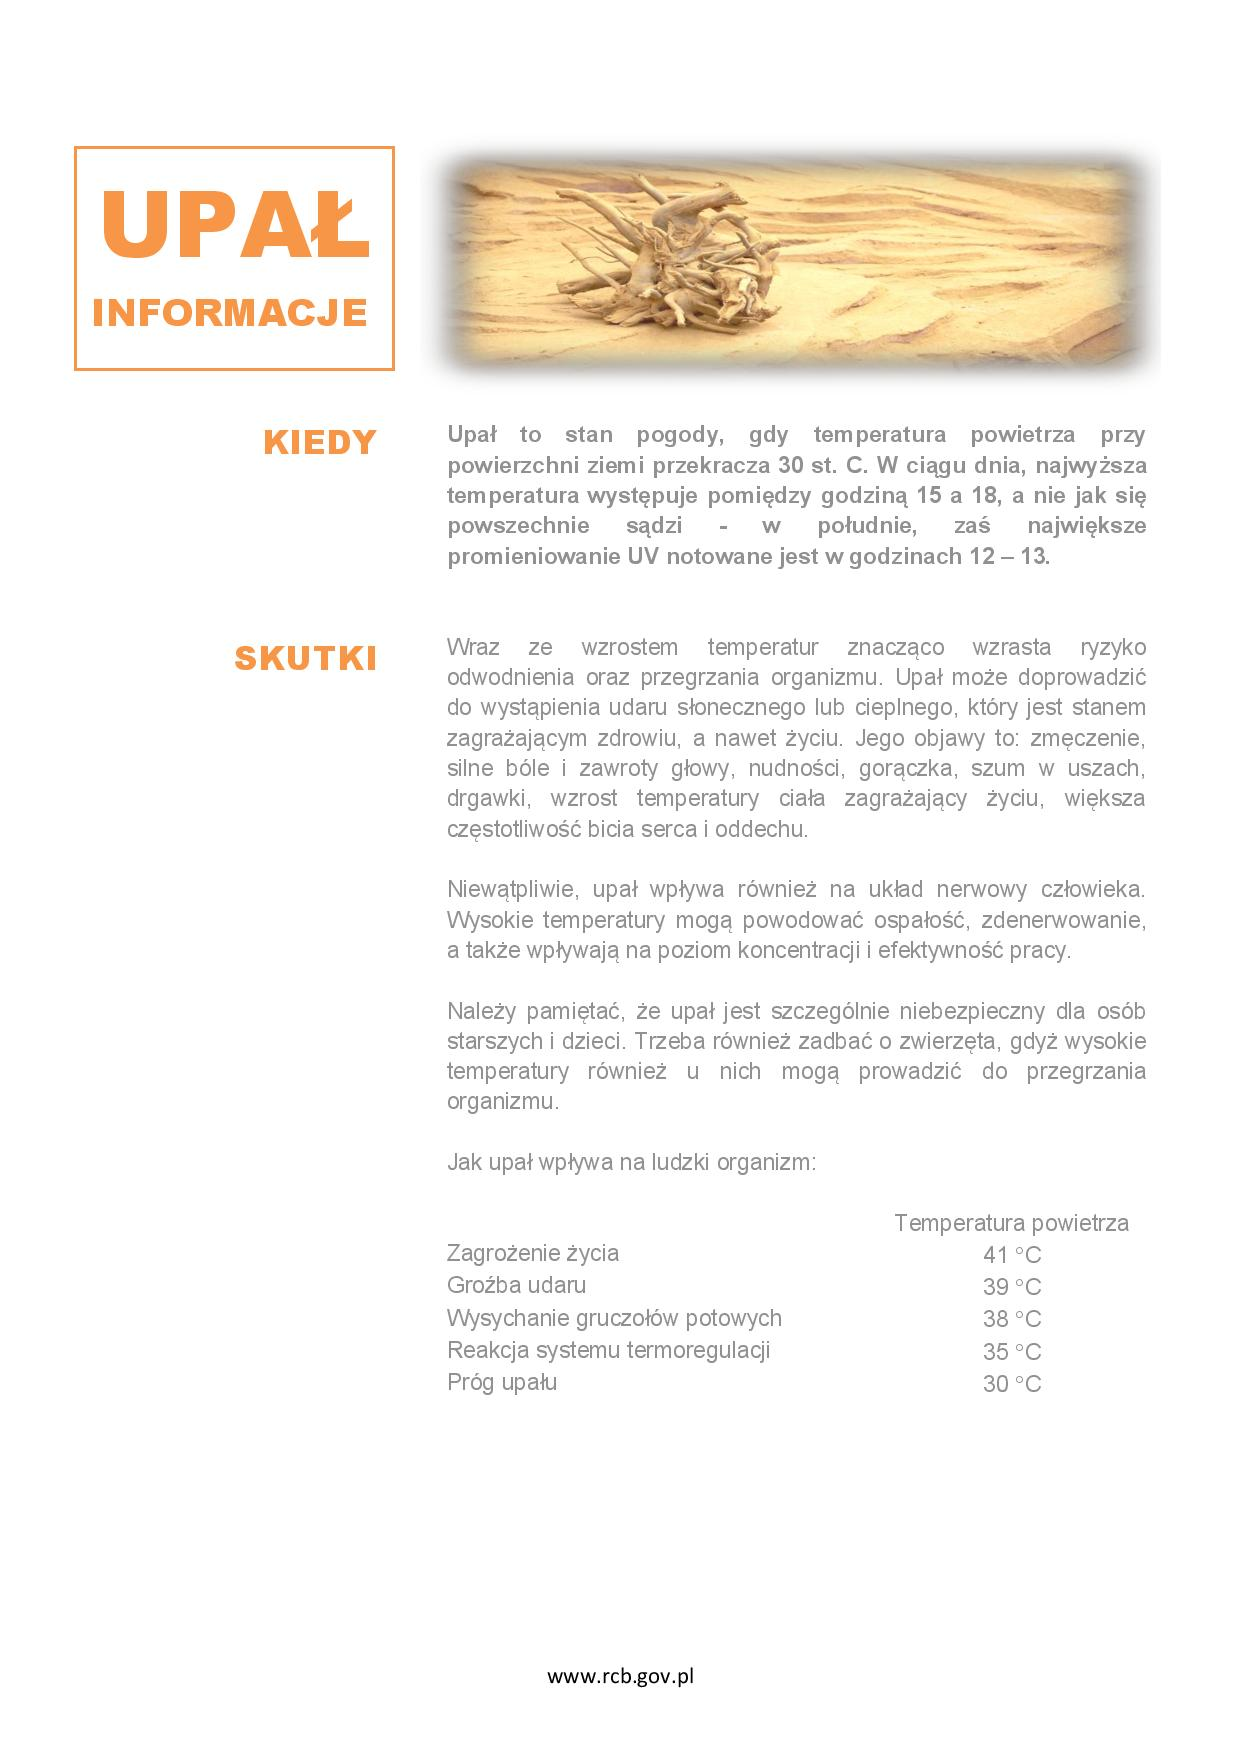 - document-page-002.jpg